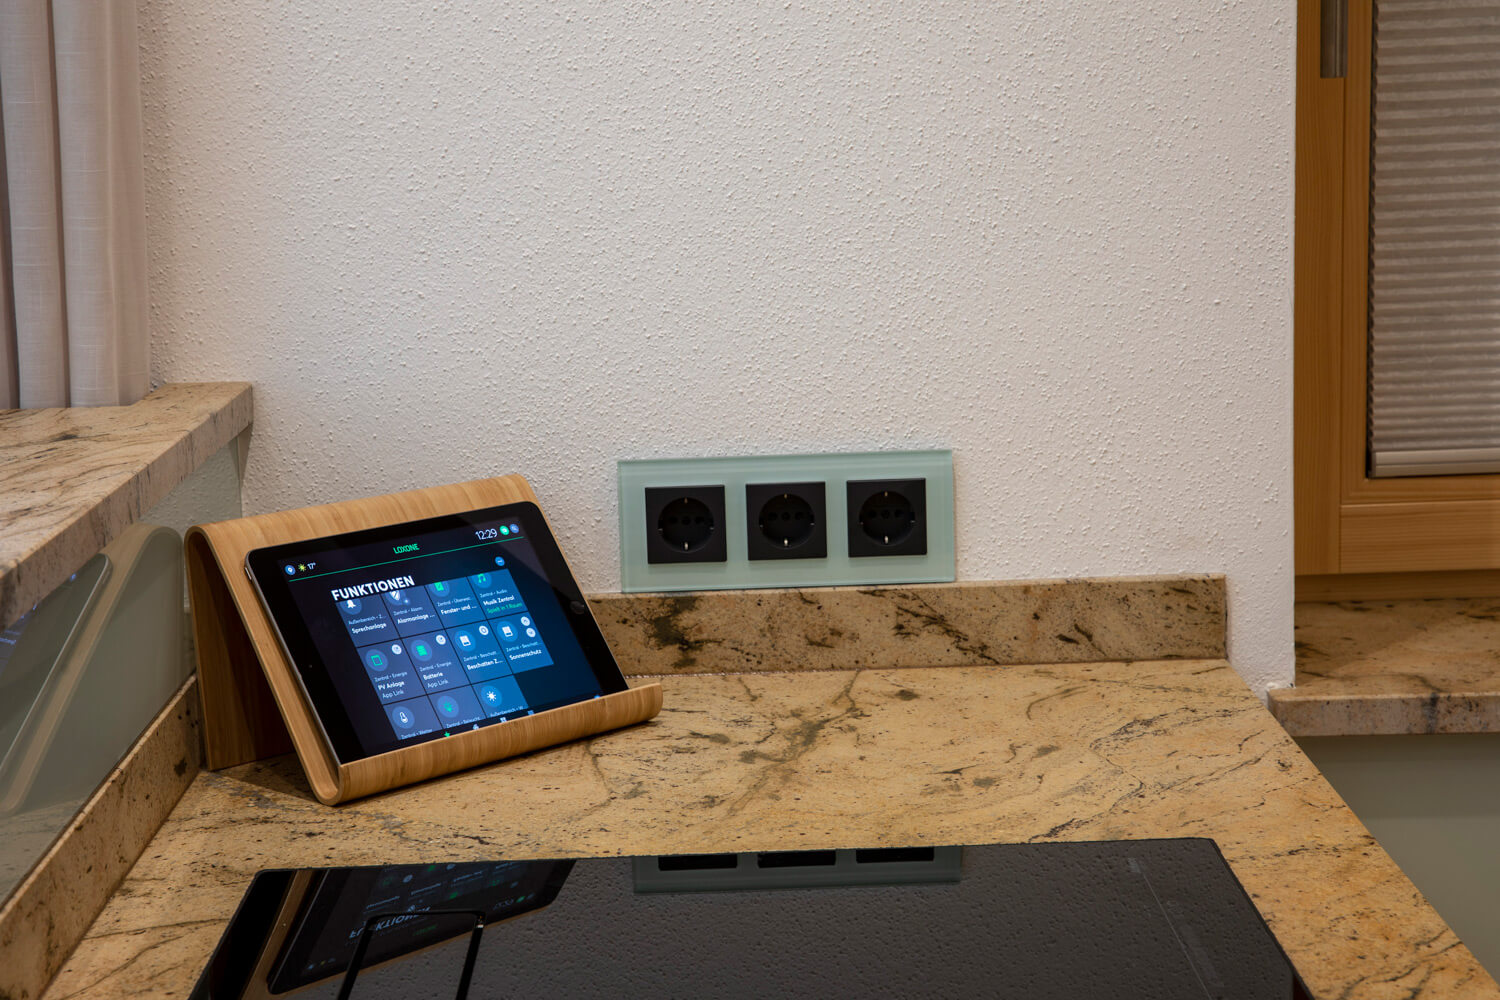 Smart Home Steuerung Modernes Wohnhaus Mit Smart Home Automatisation E Technic